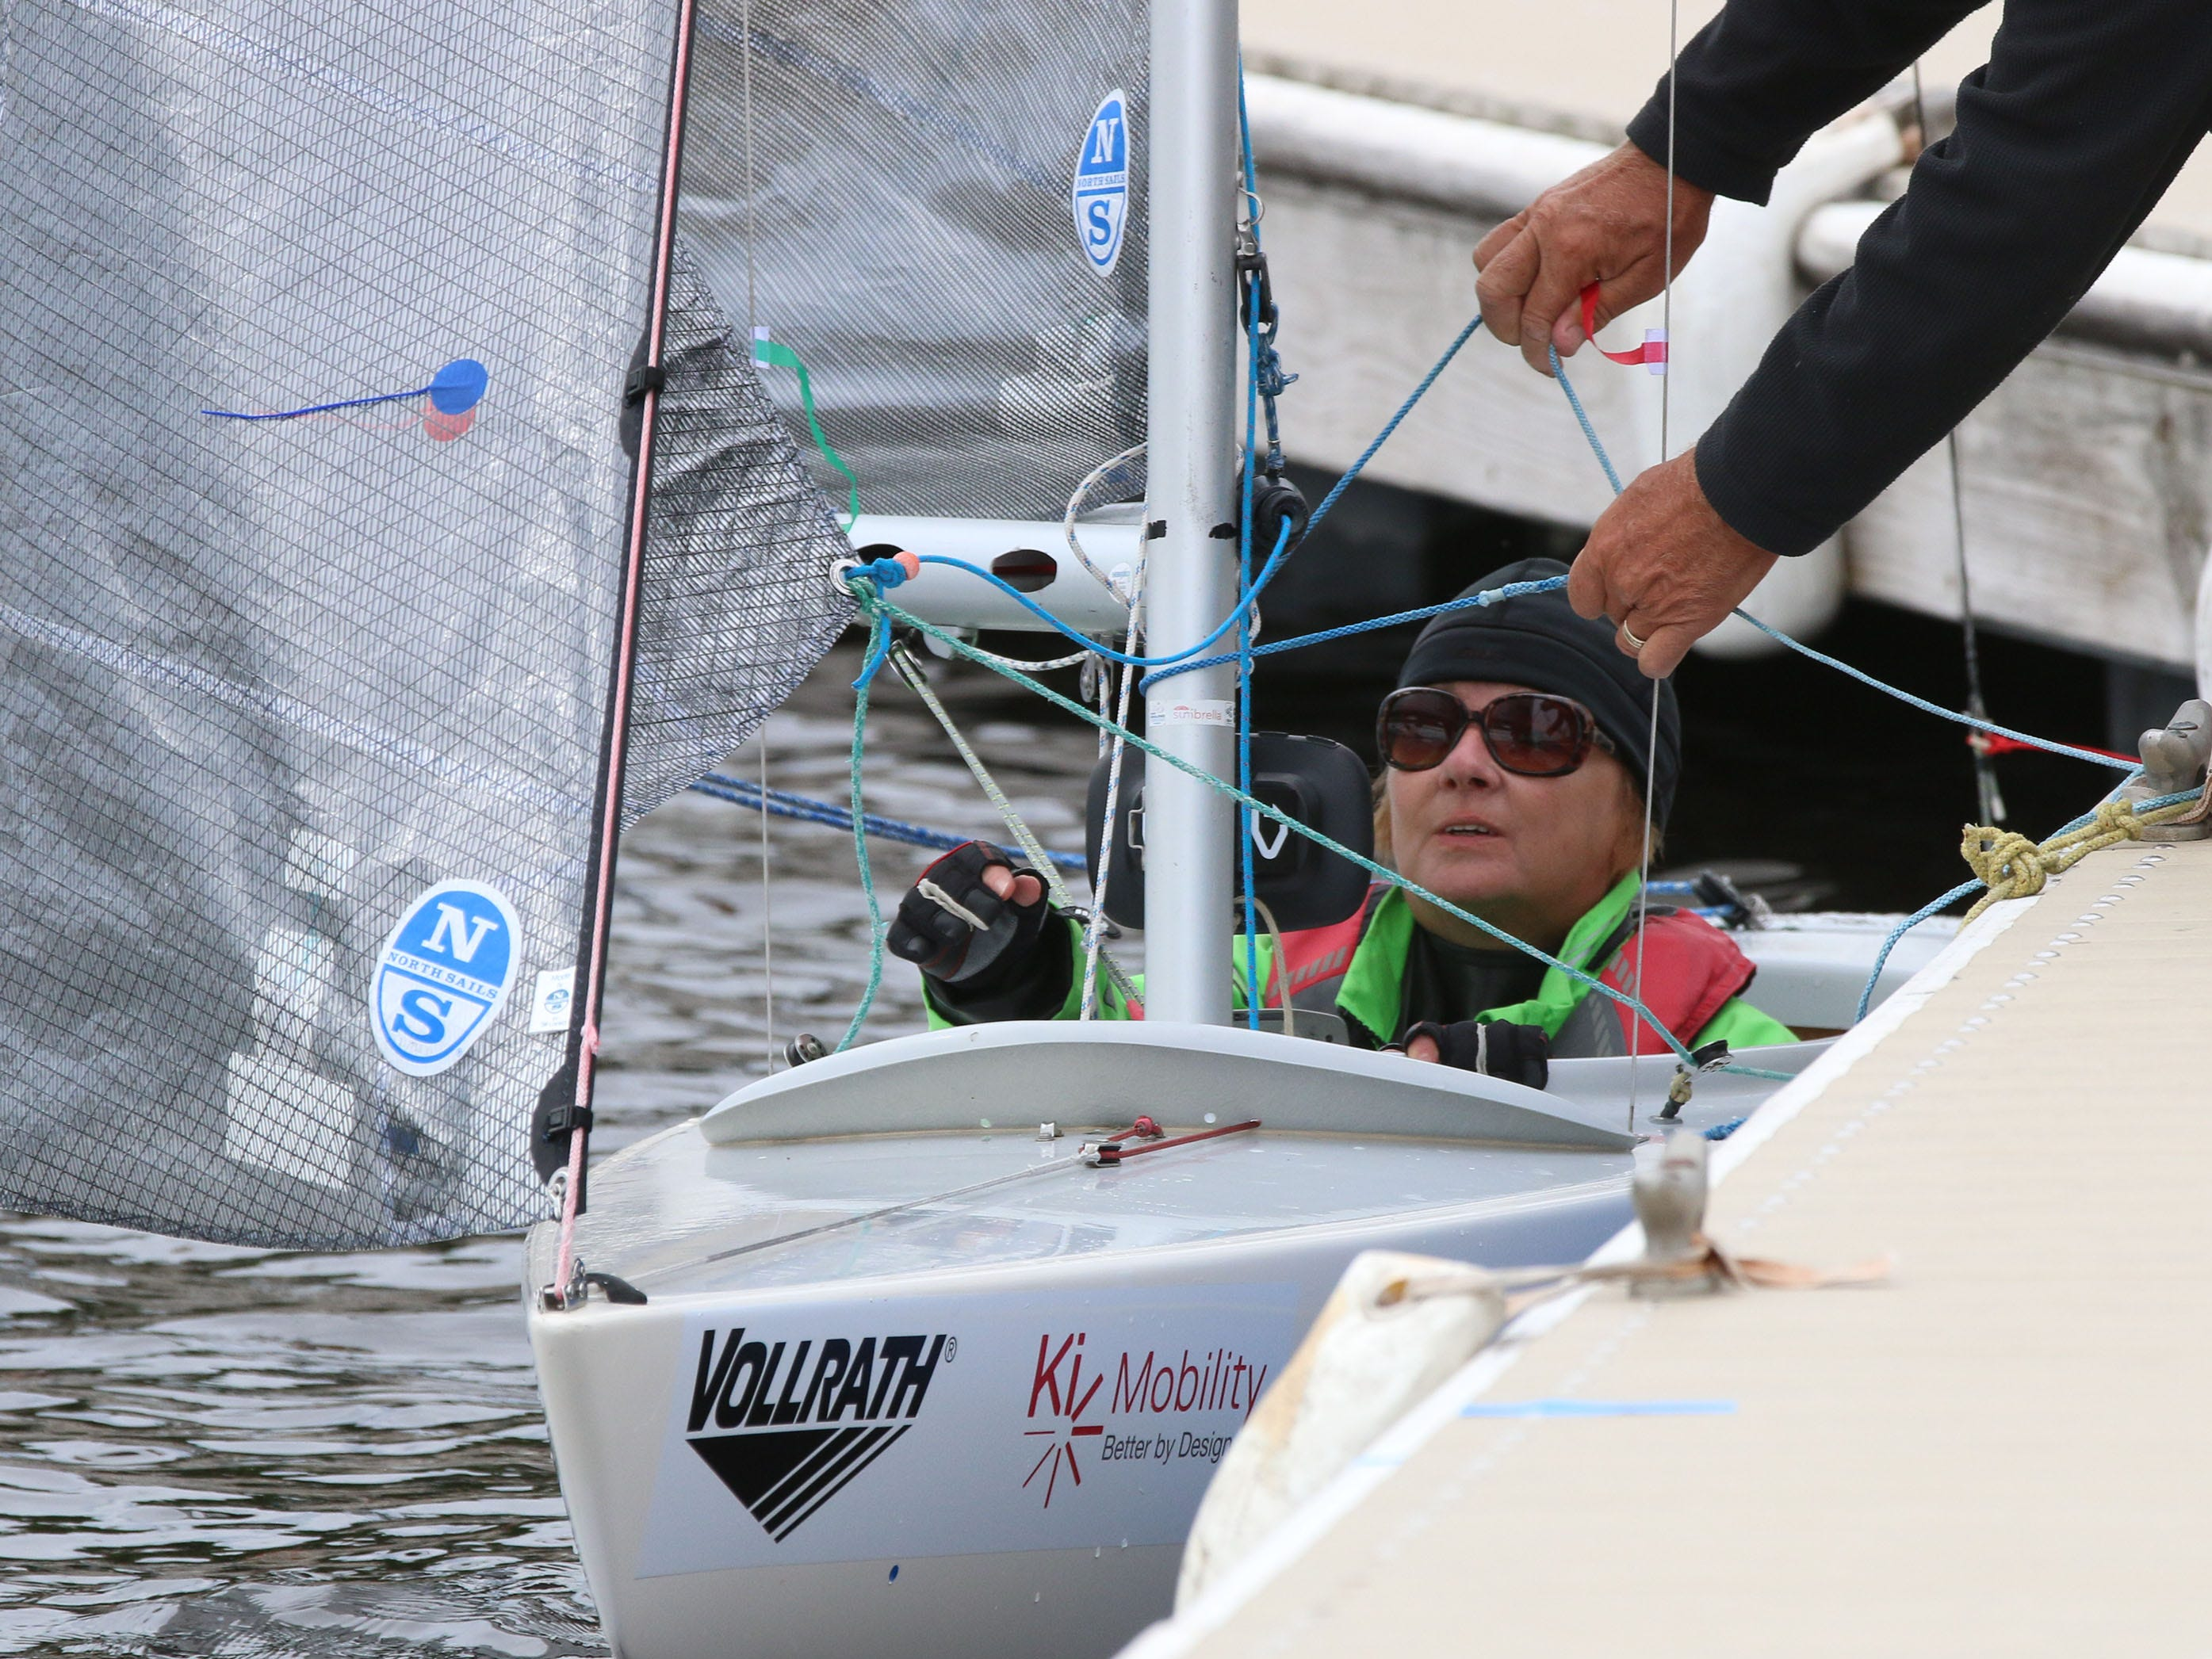 Christine Laballee of Gatineau, Quebec, Canada, observes as her support crew organizes her boat's rigging before her competition in the Para World Sailing Championships, Tuesday, September 18, 2018, in Sheboygan, Wis.